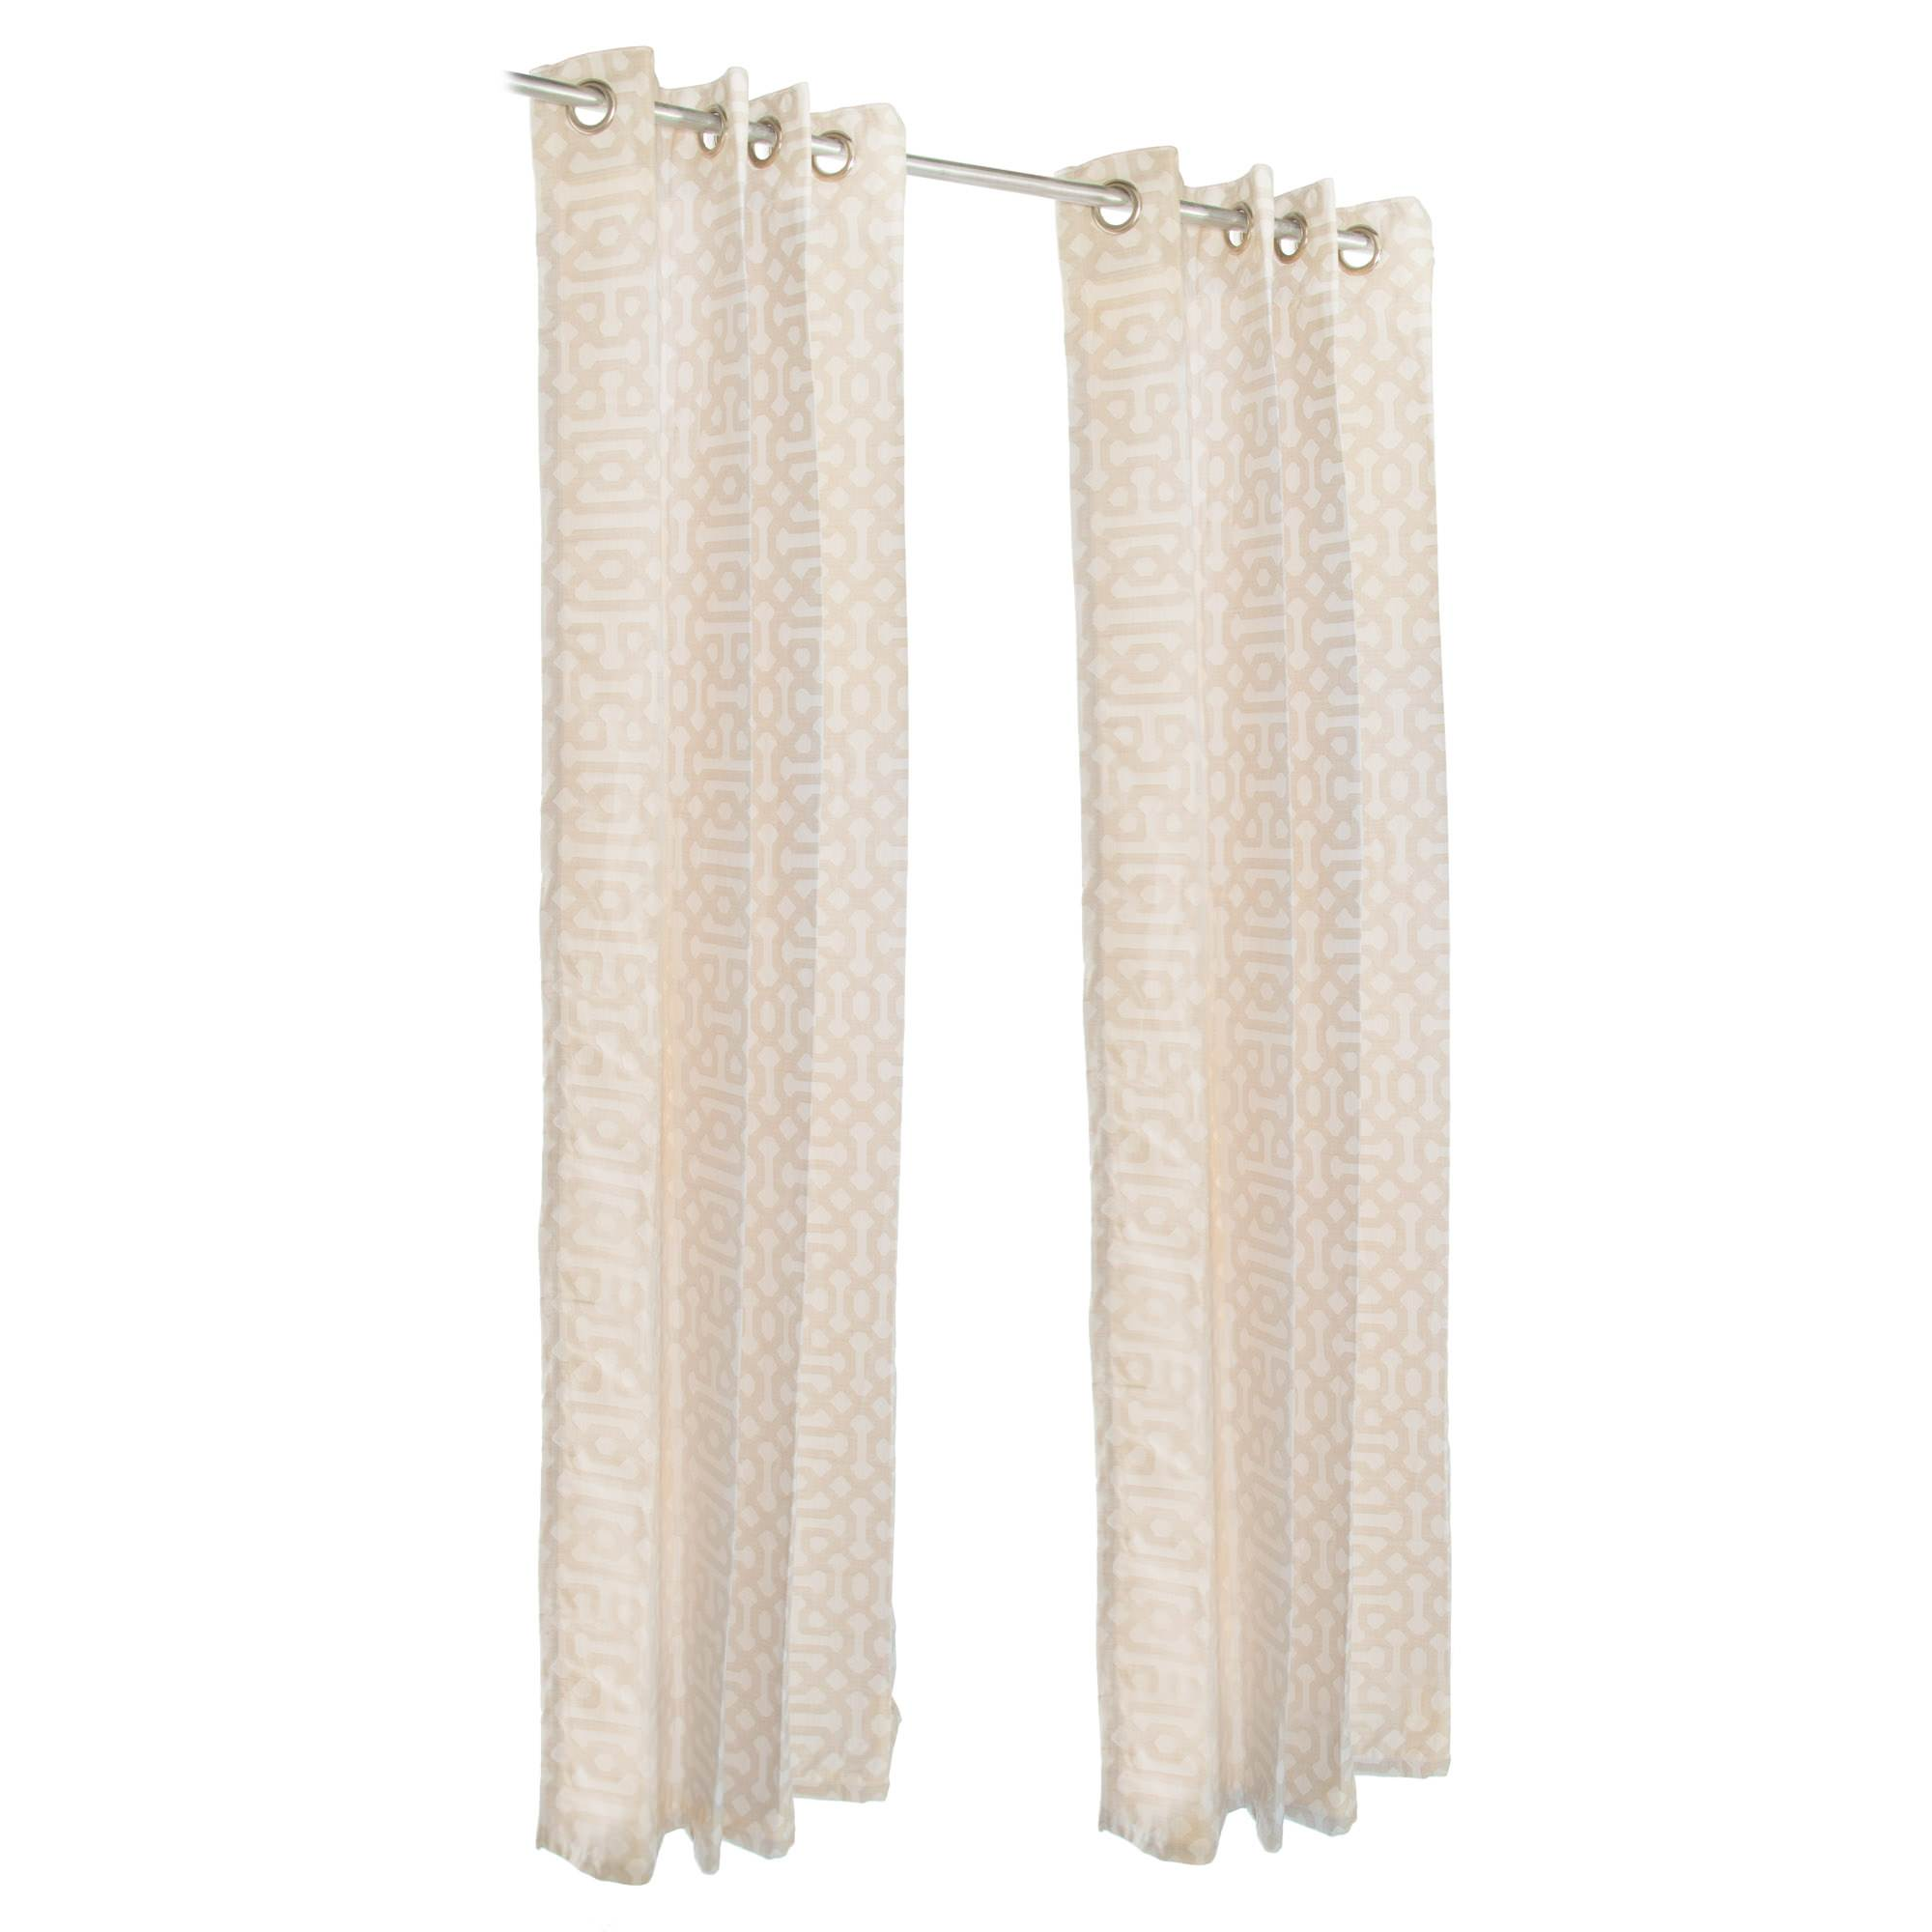 Fretwork Flax Sunbrella Nickel Grommeted Outdoor Curtain by Pawleys Island